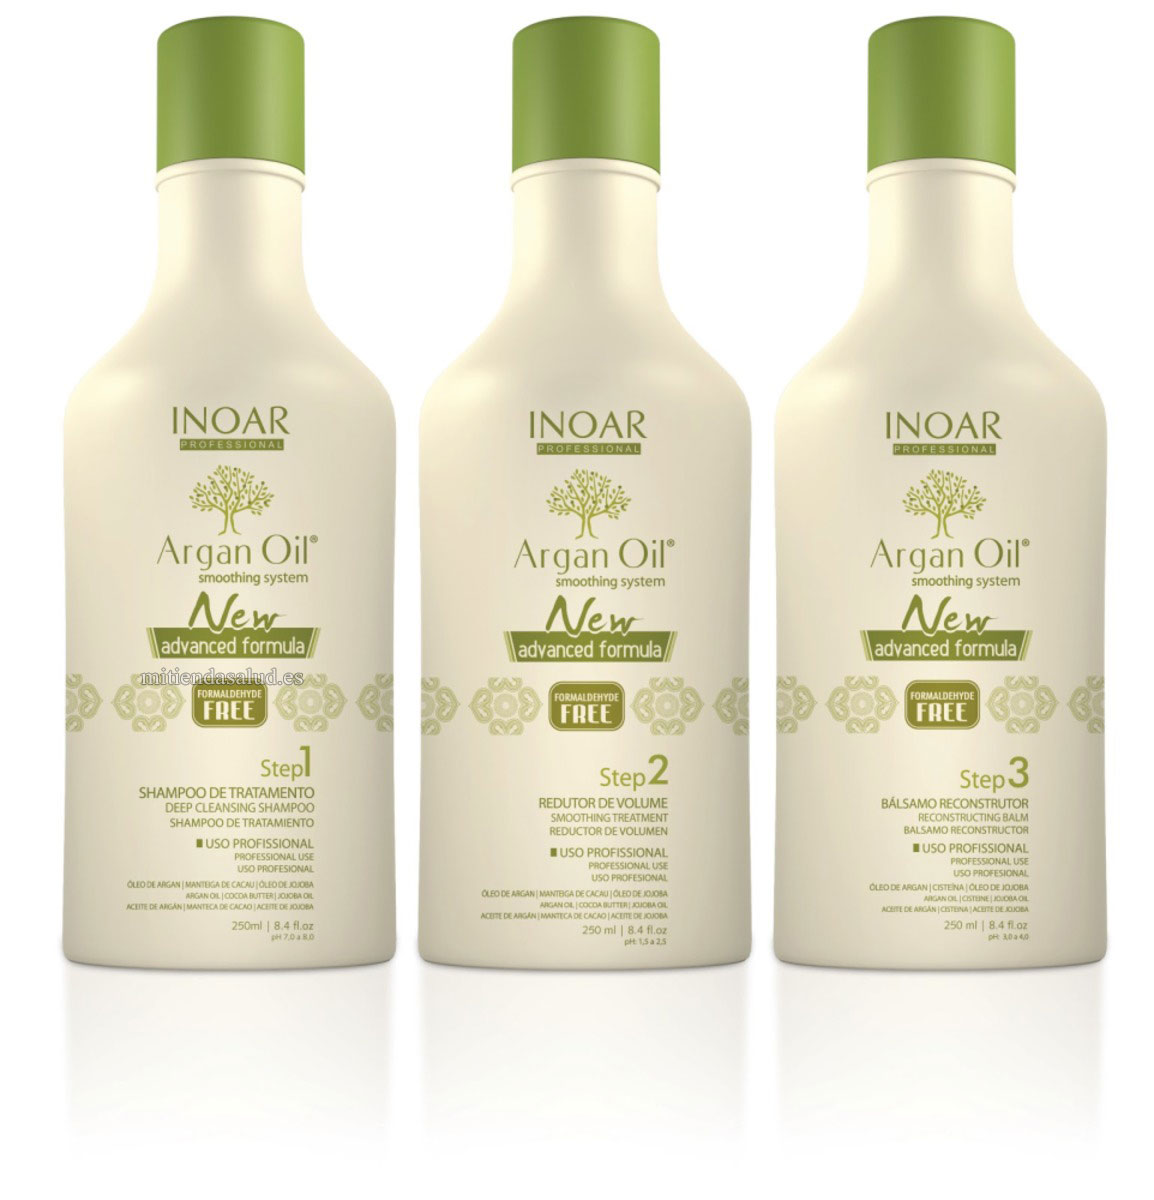 Kit Inoar Aceite de Argan 750 ml